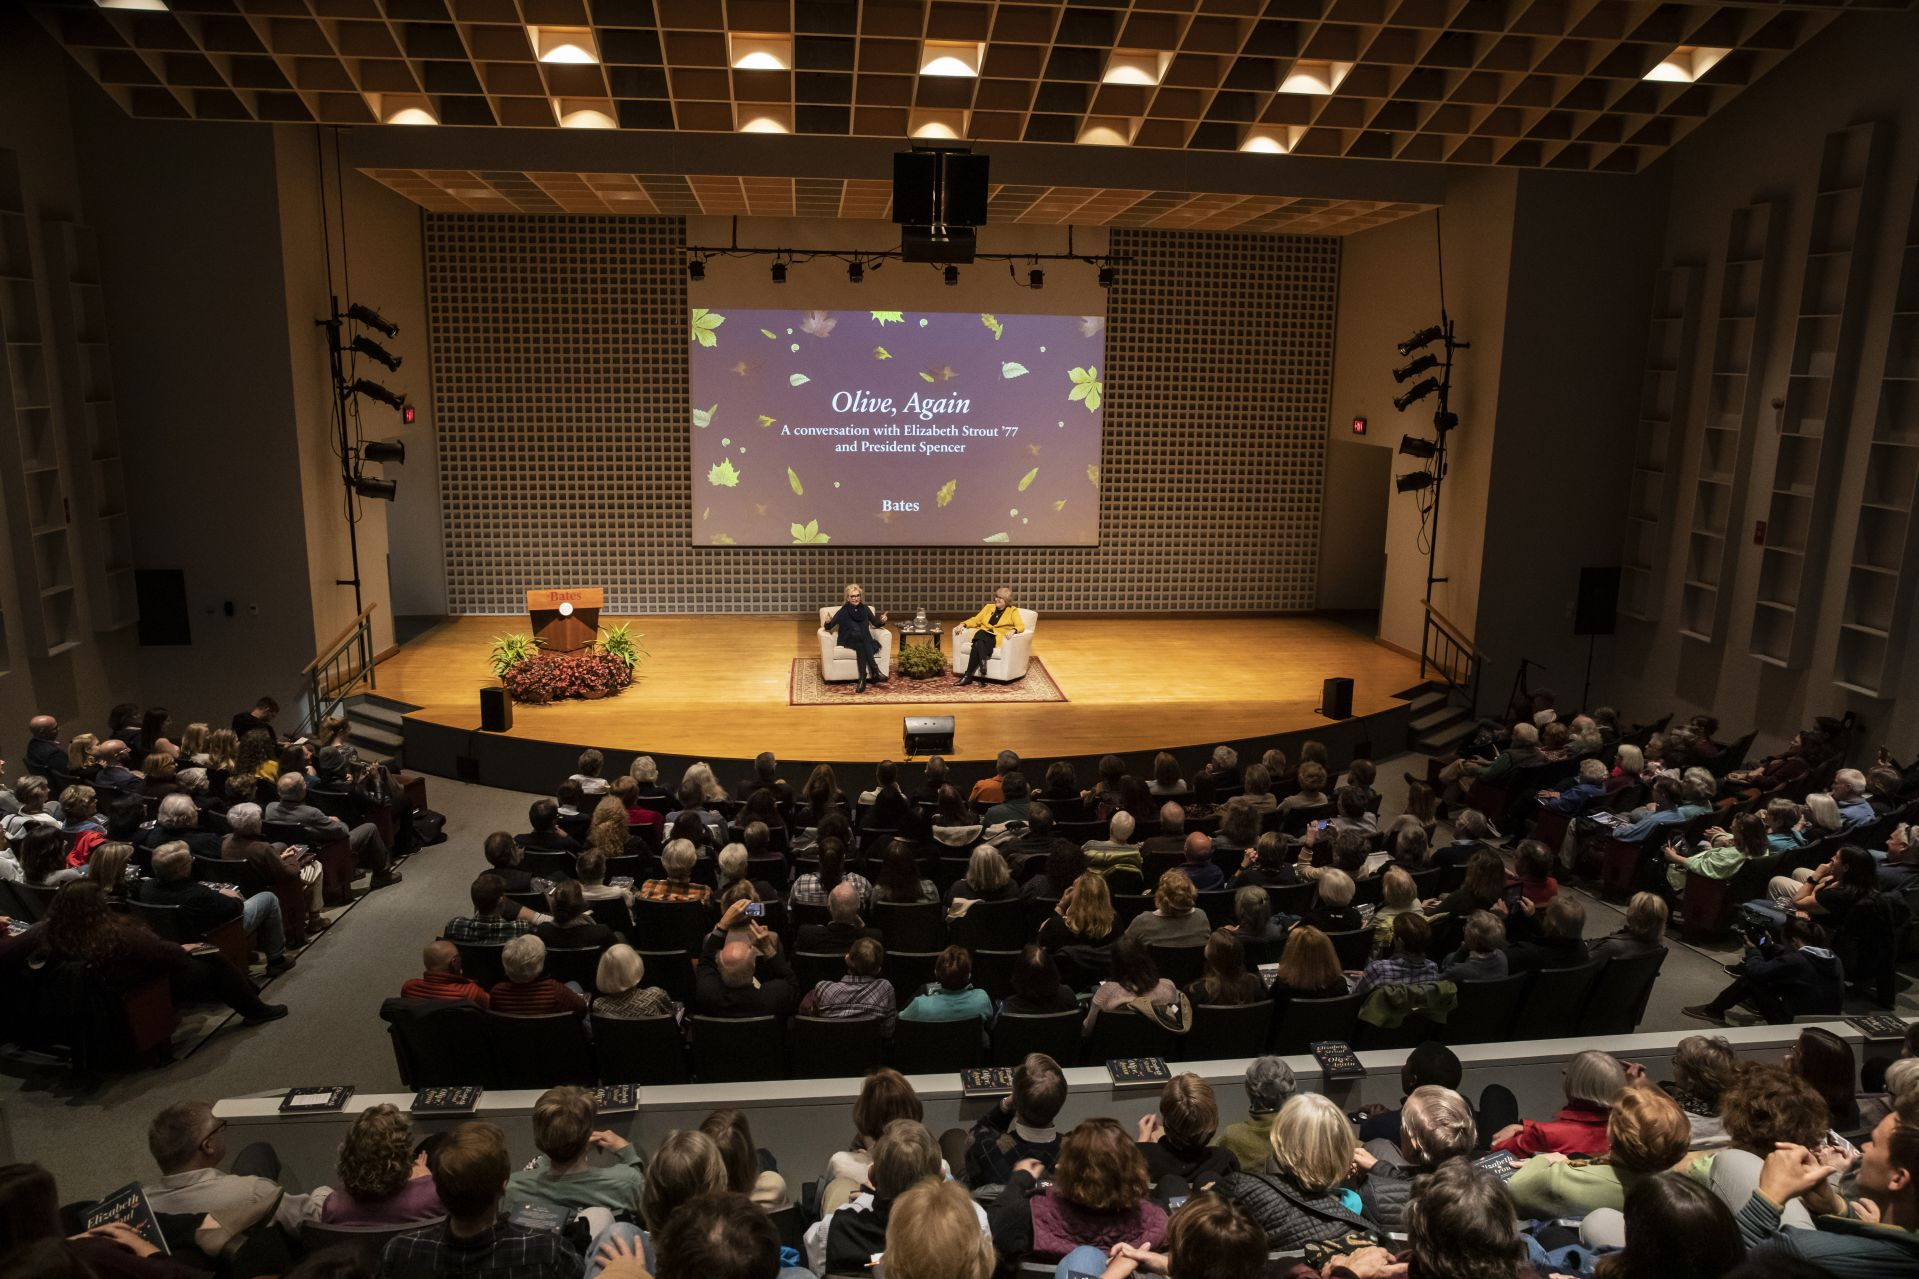 The appearance by Pulitzer Prize–winning author Elizabeth Strout '77, interviewed by Bates President Clayton Spencer, filled the Olin Arts Center Concert Hall on Oct. 21. (Phyllis Graber Jensen/Bates College)